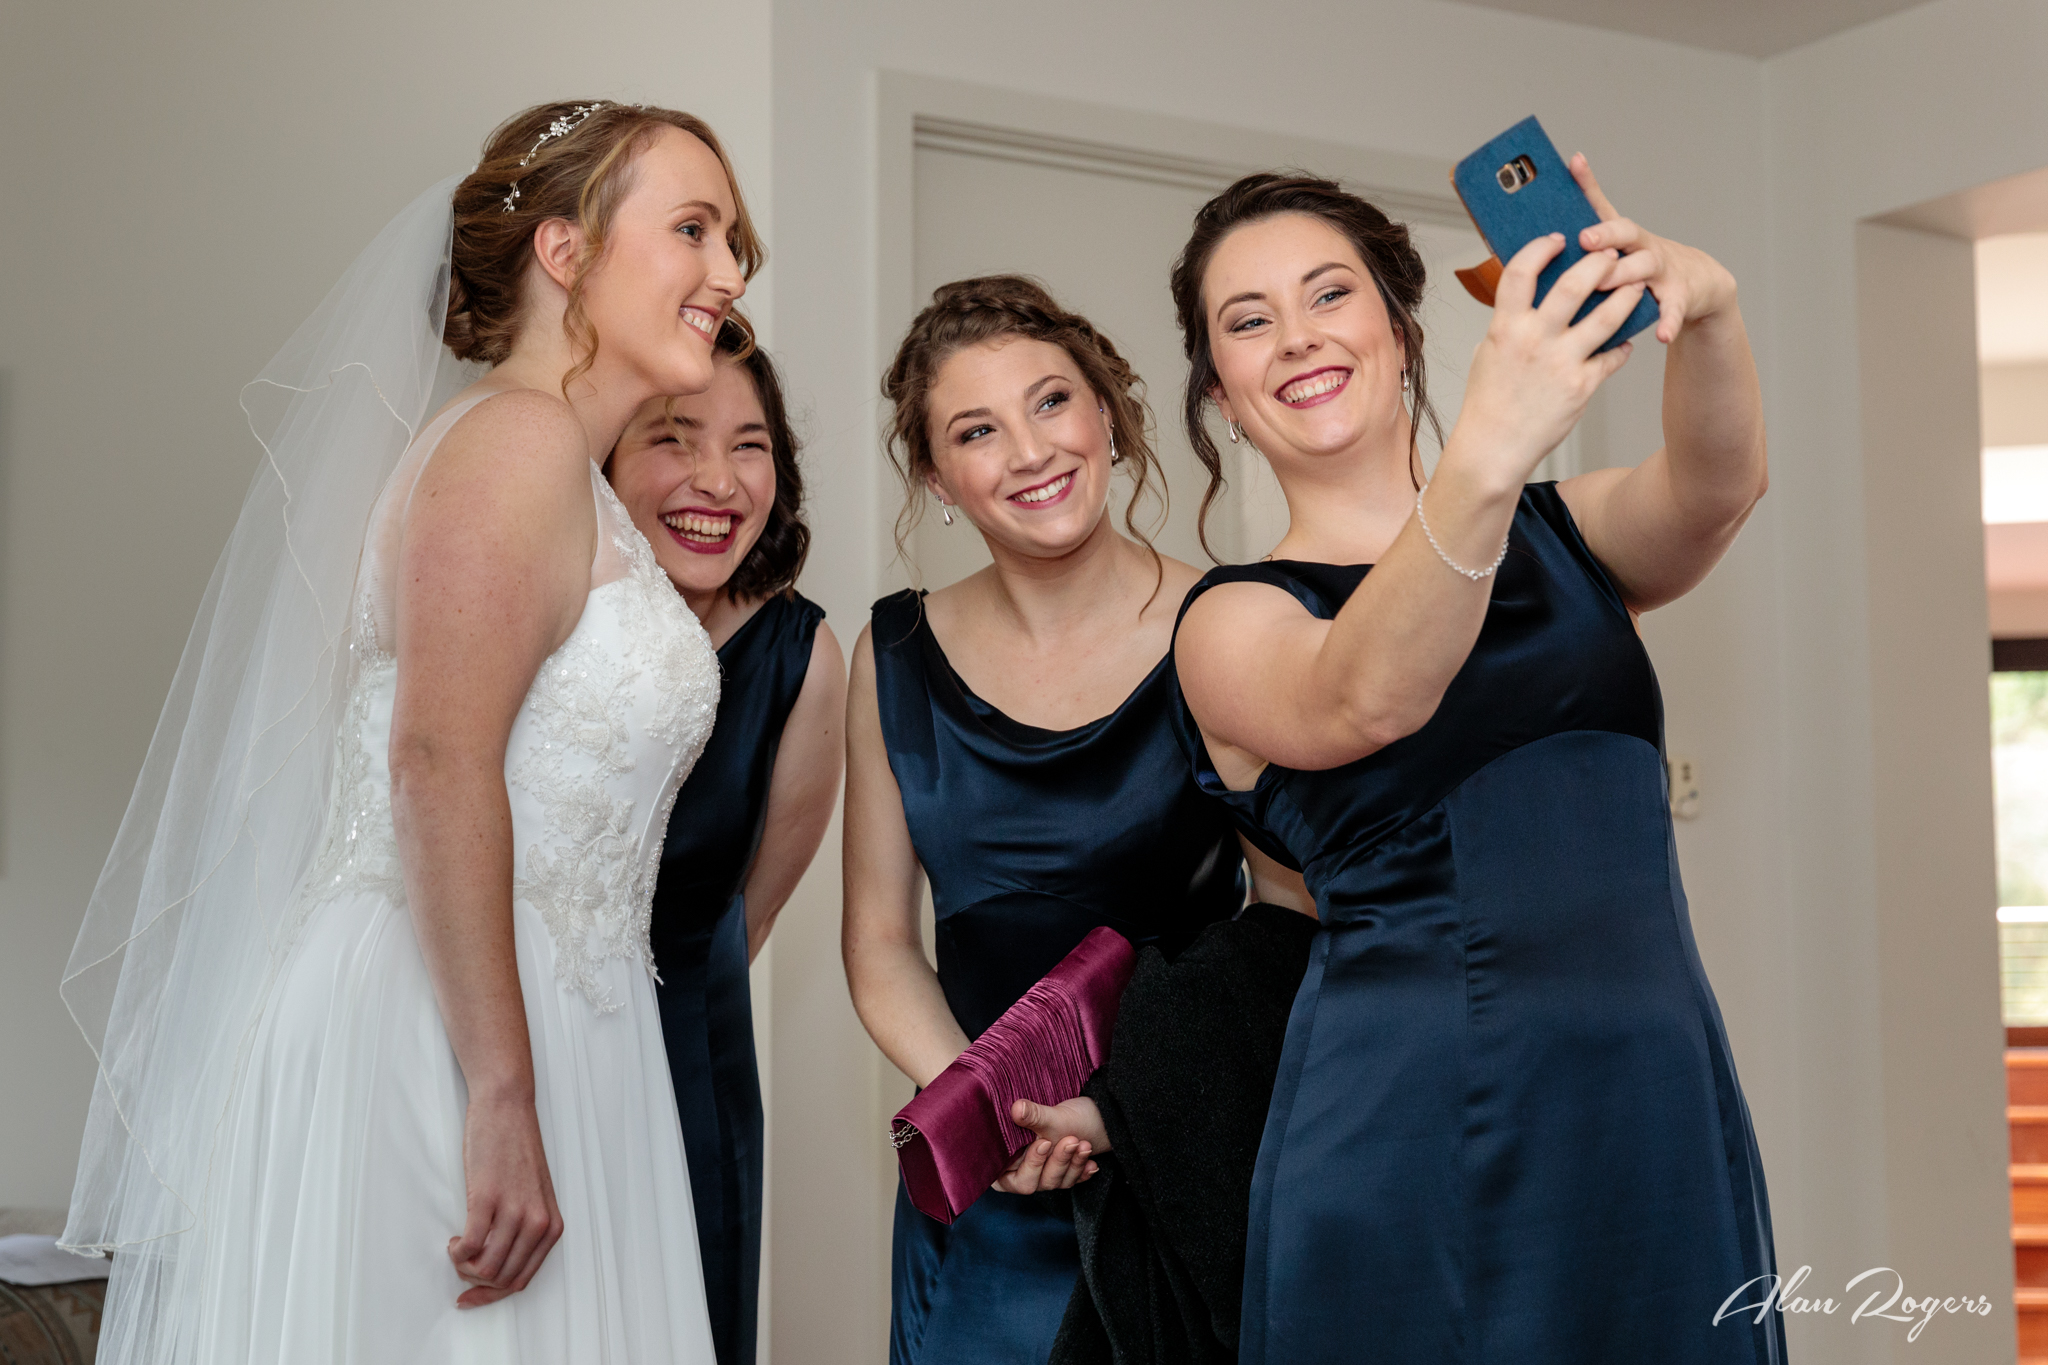 Bride and her Bridesmaids take a selfie before heading off to the church.